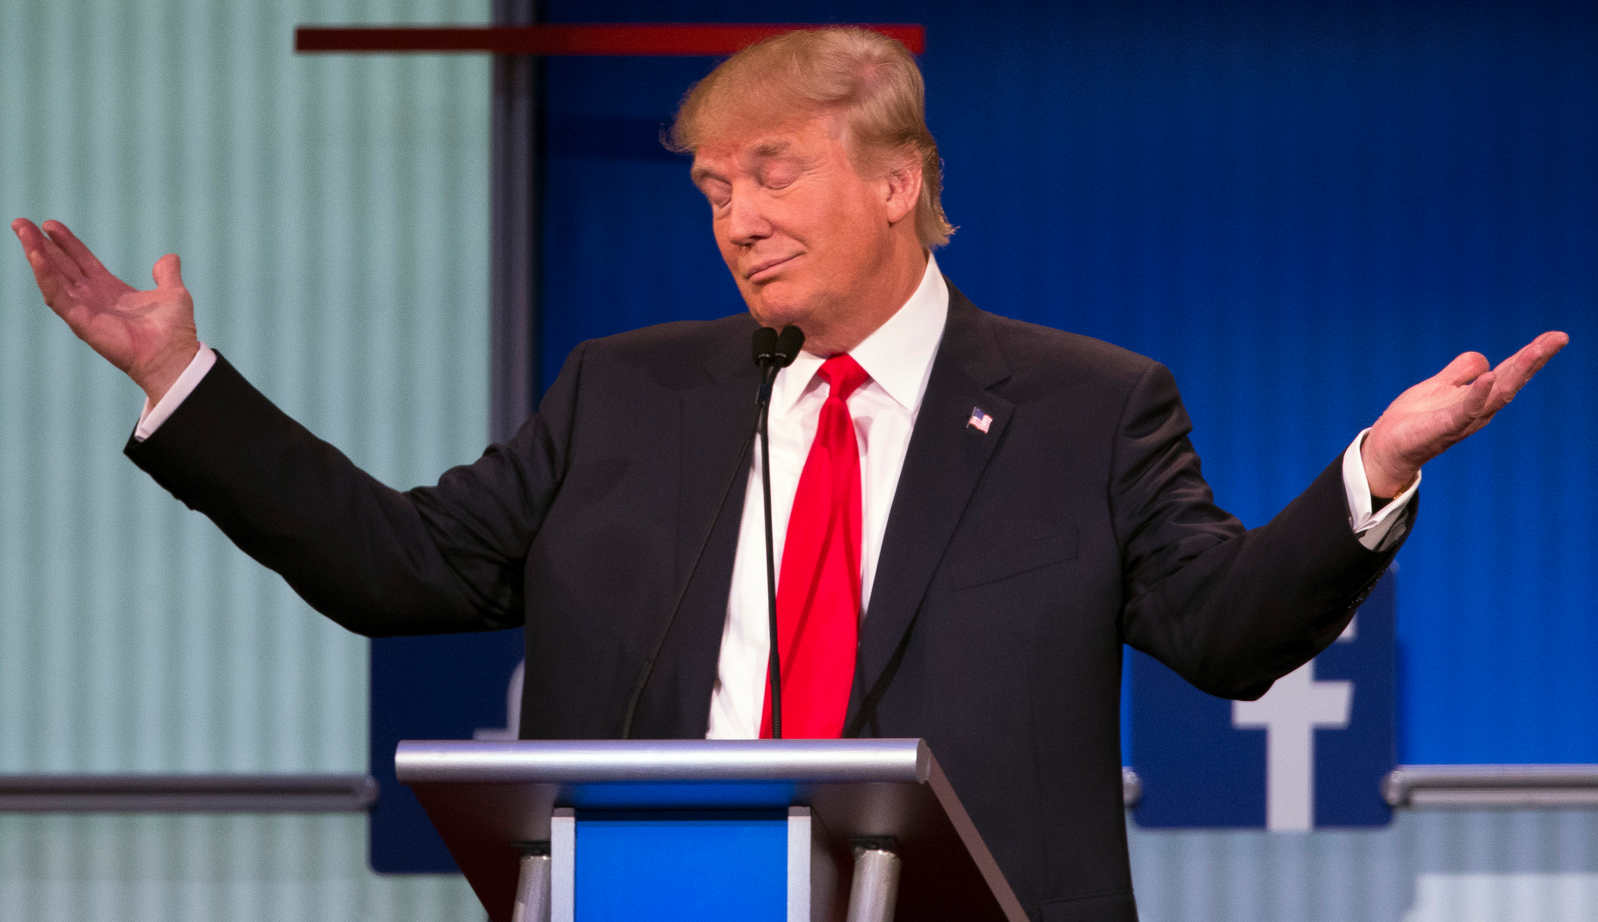 Republican presidential candidate Donald Trump gestures during the first Republican presidential debate in Cleveland, Ohio. (AP)